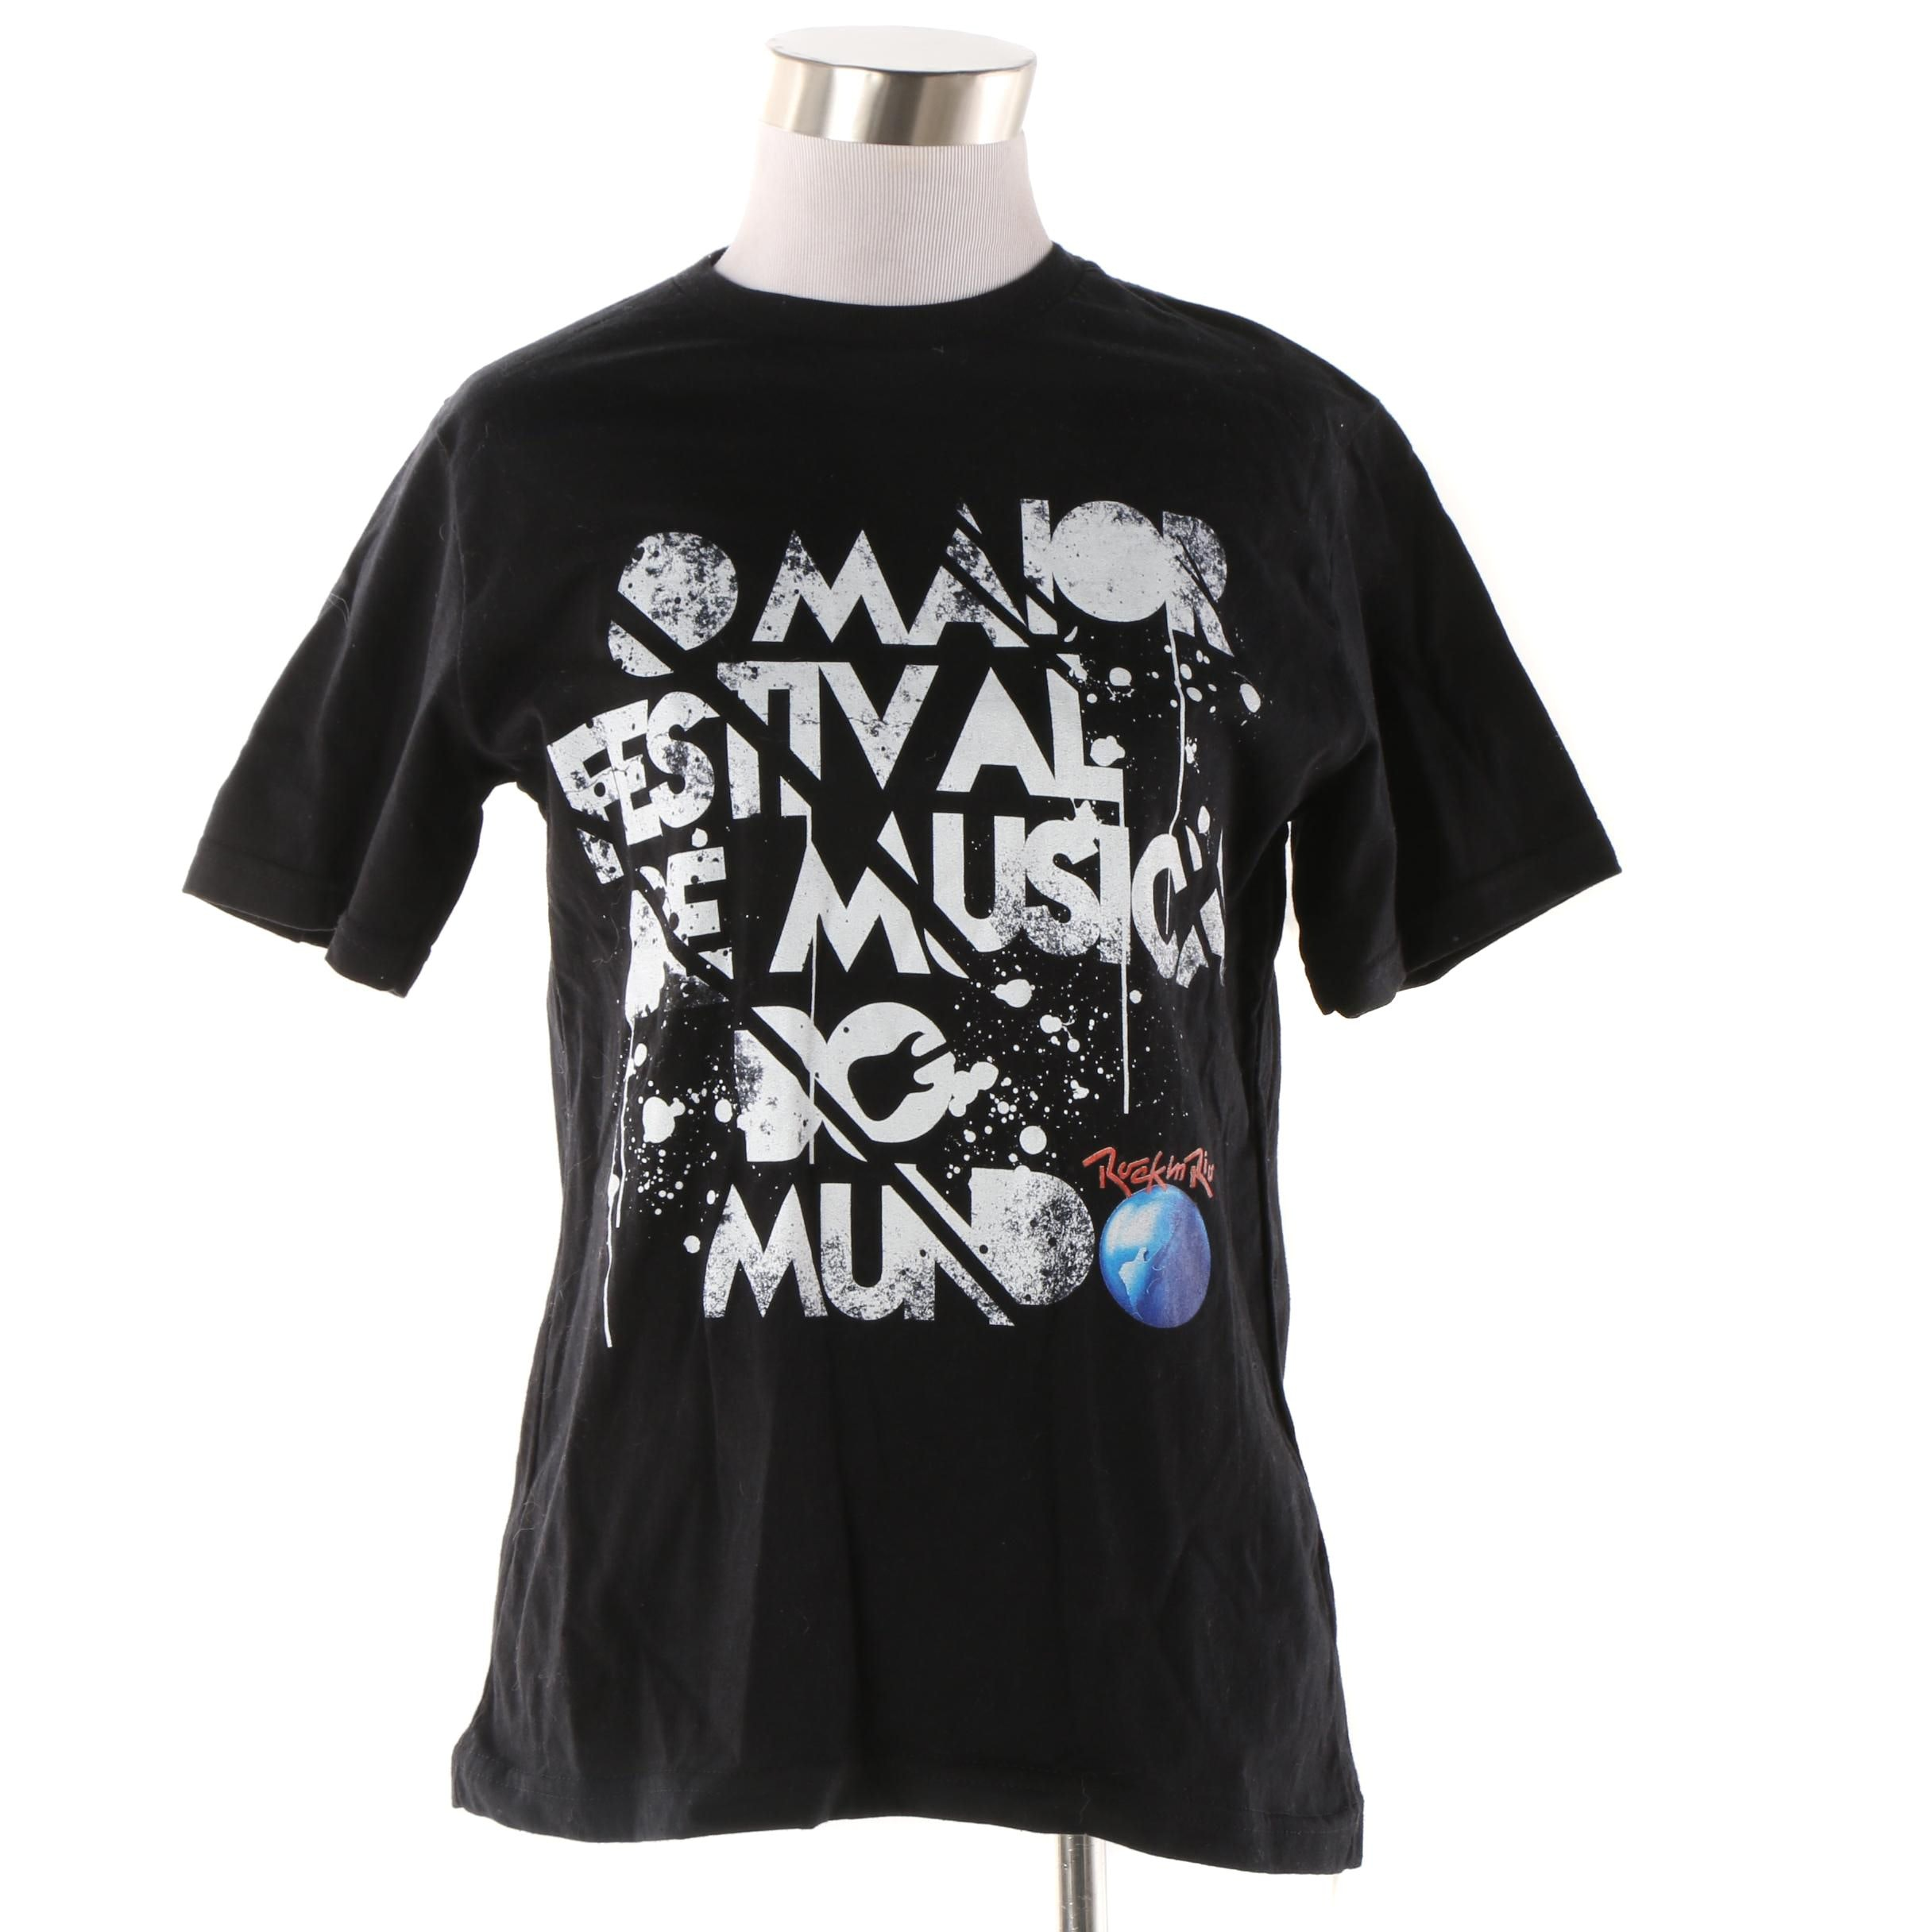 Rock in Rio Official Music Festival T-Shirt